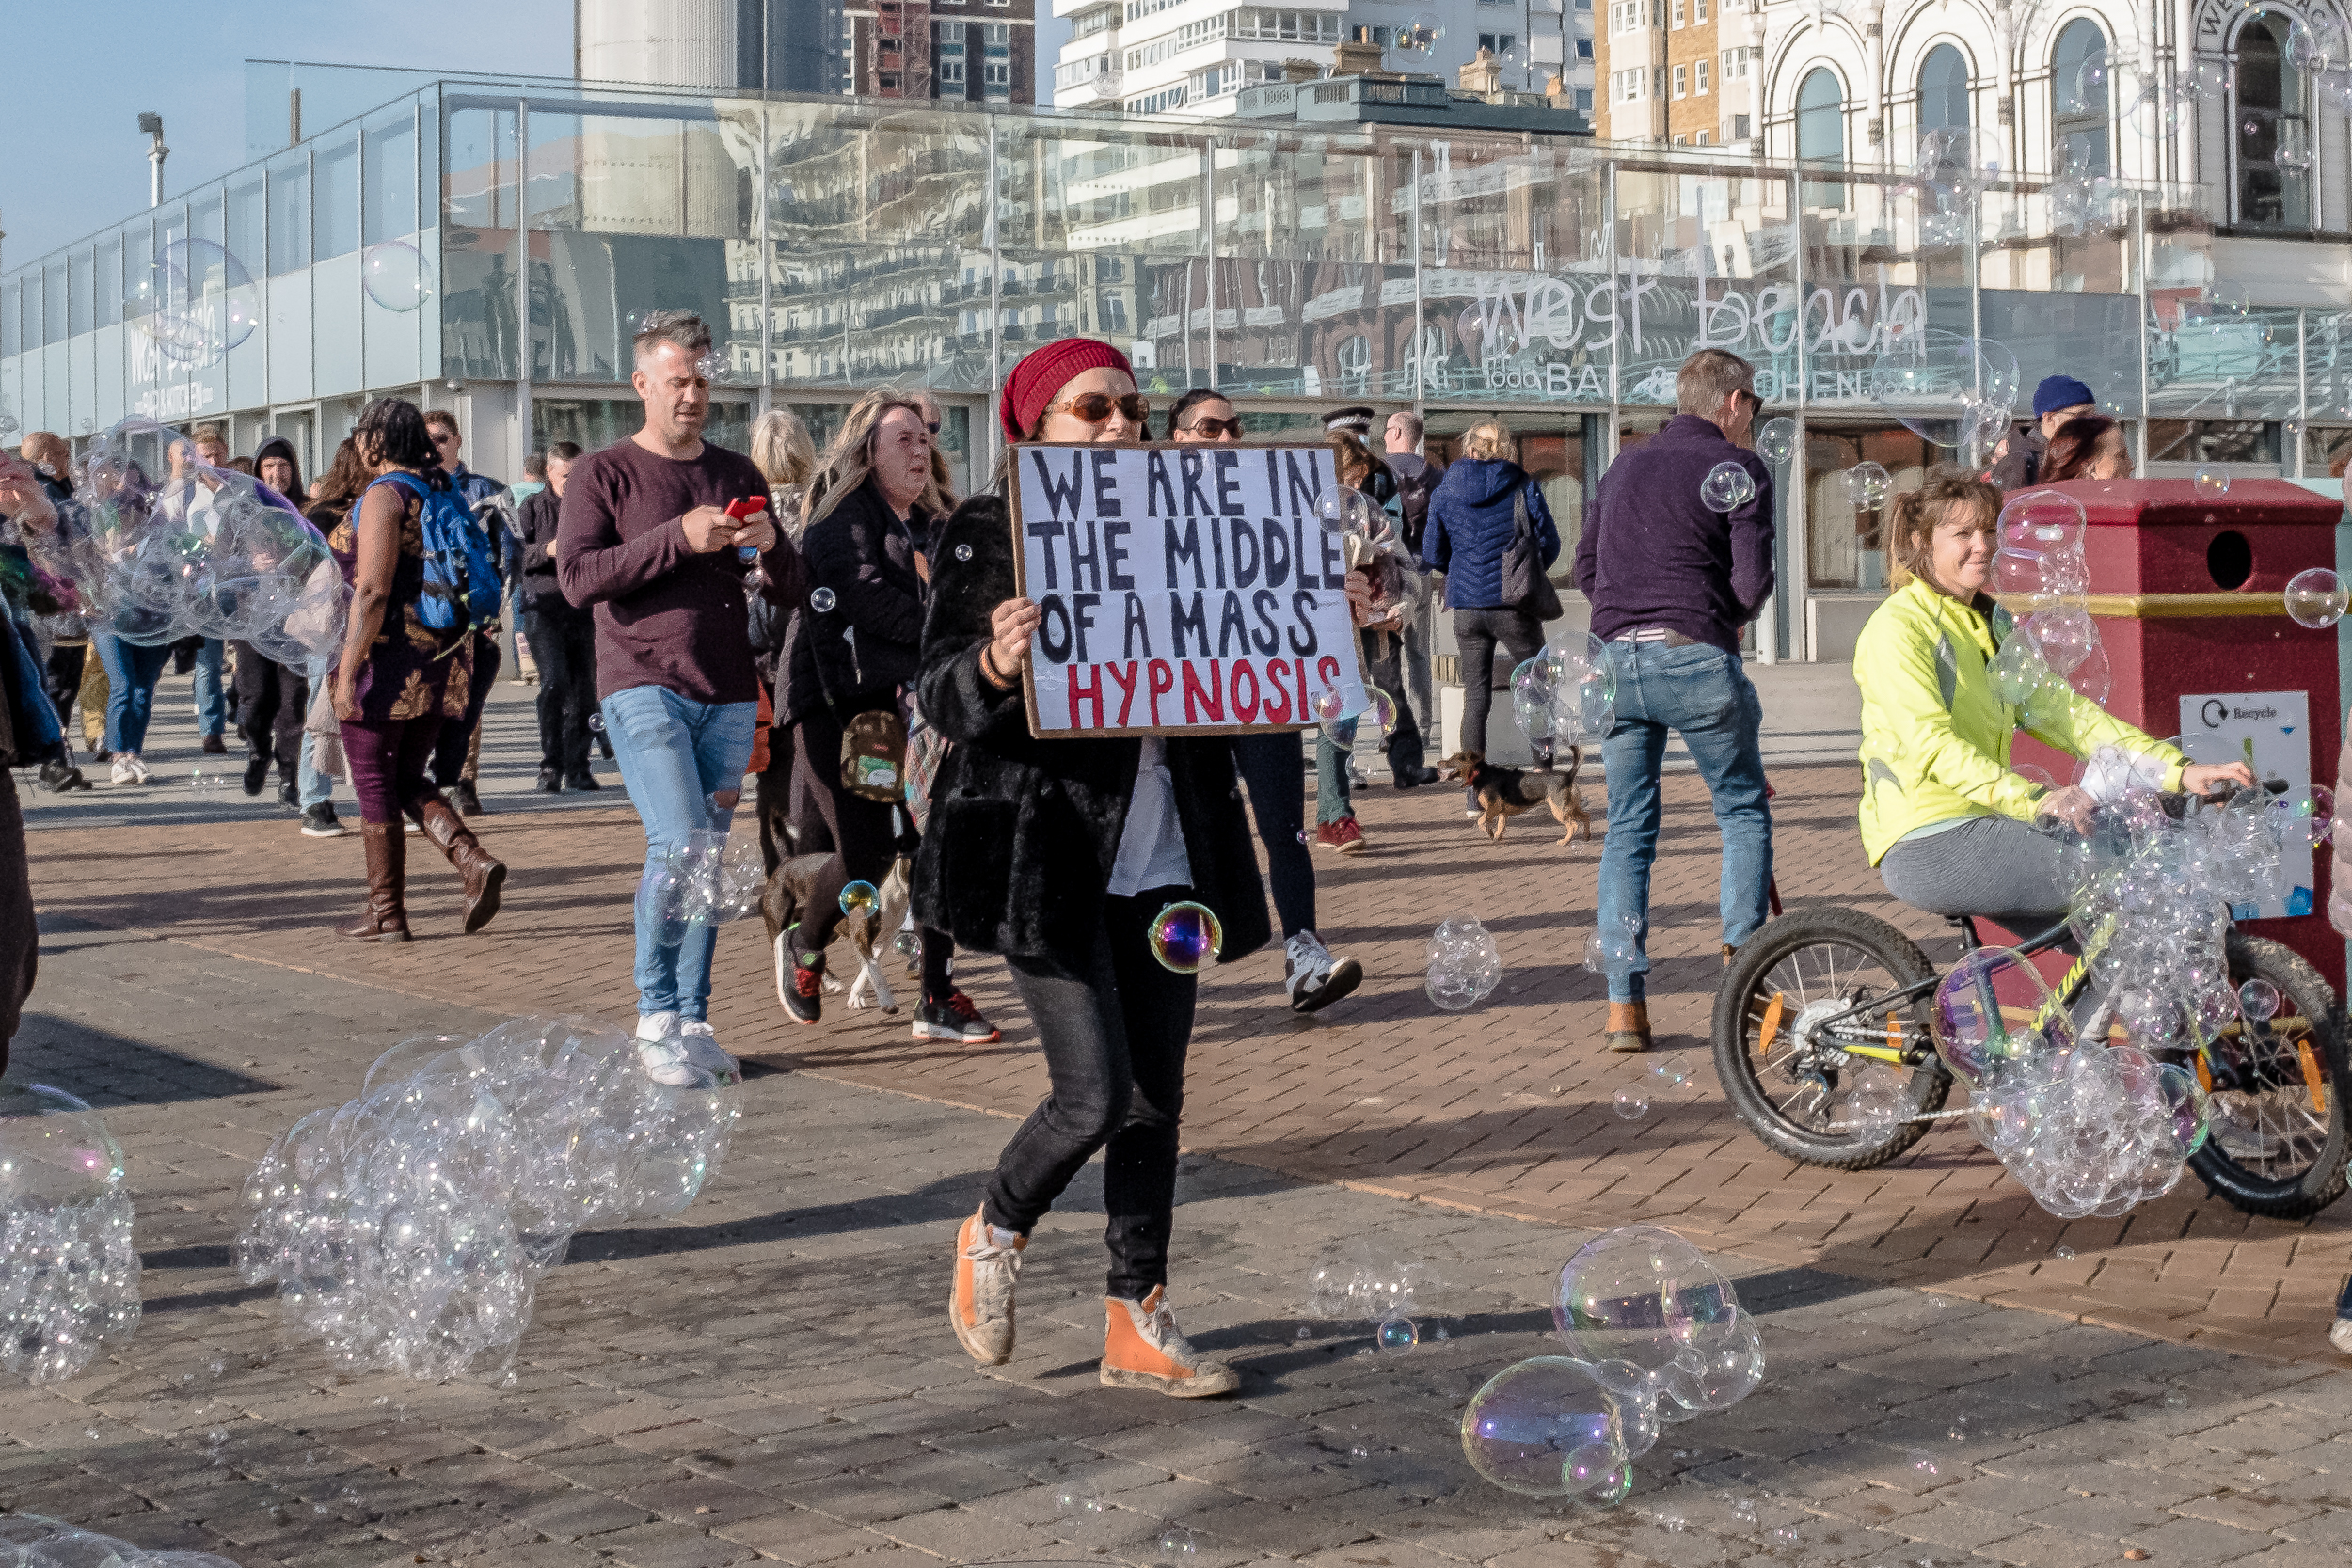 Protests Brighton seafront